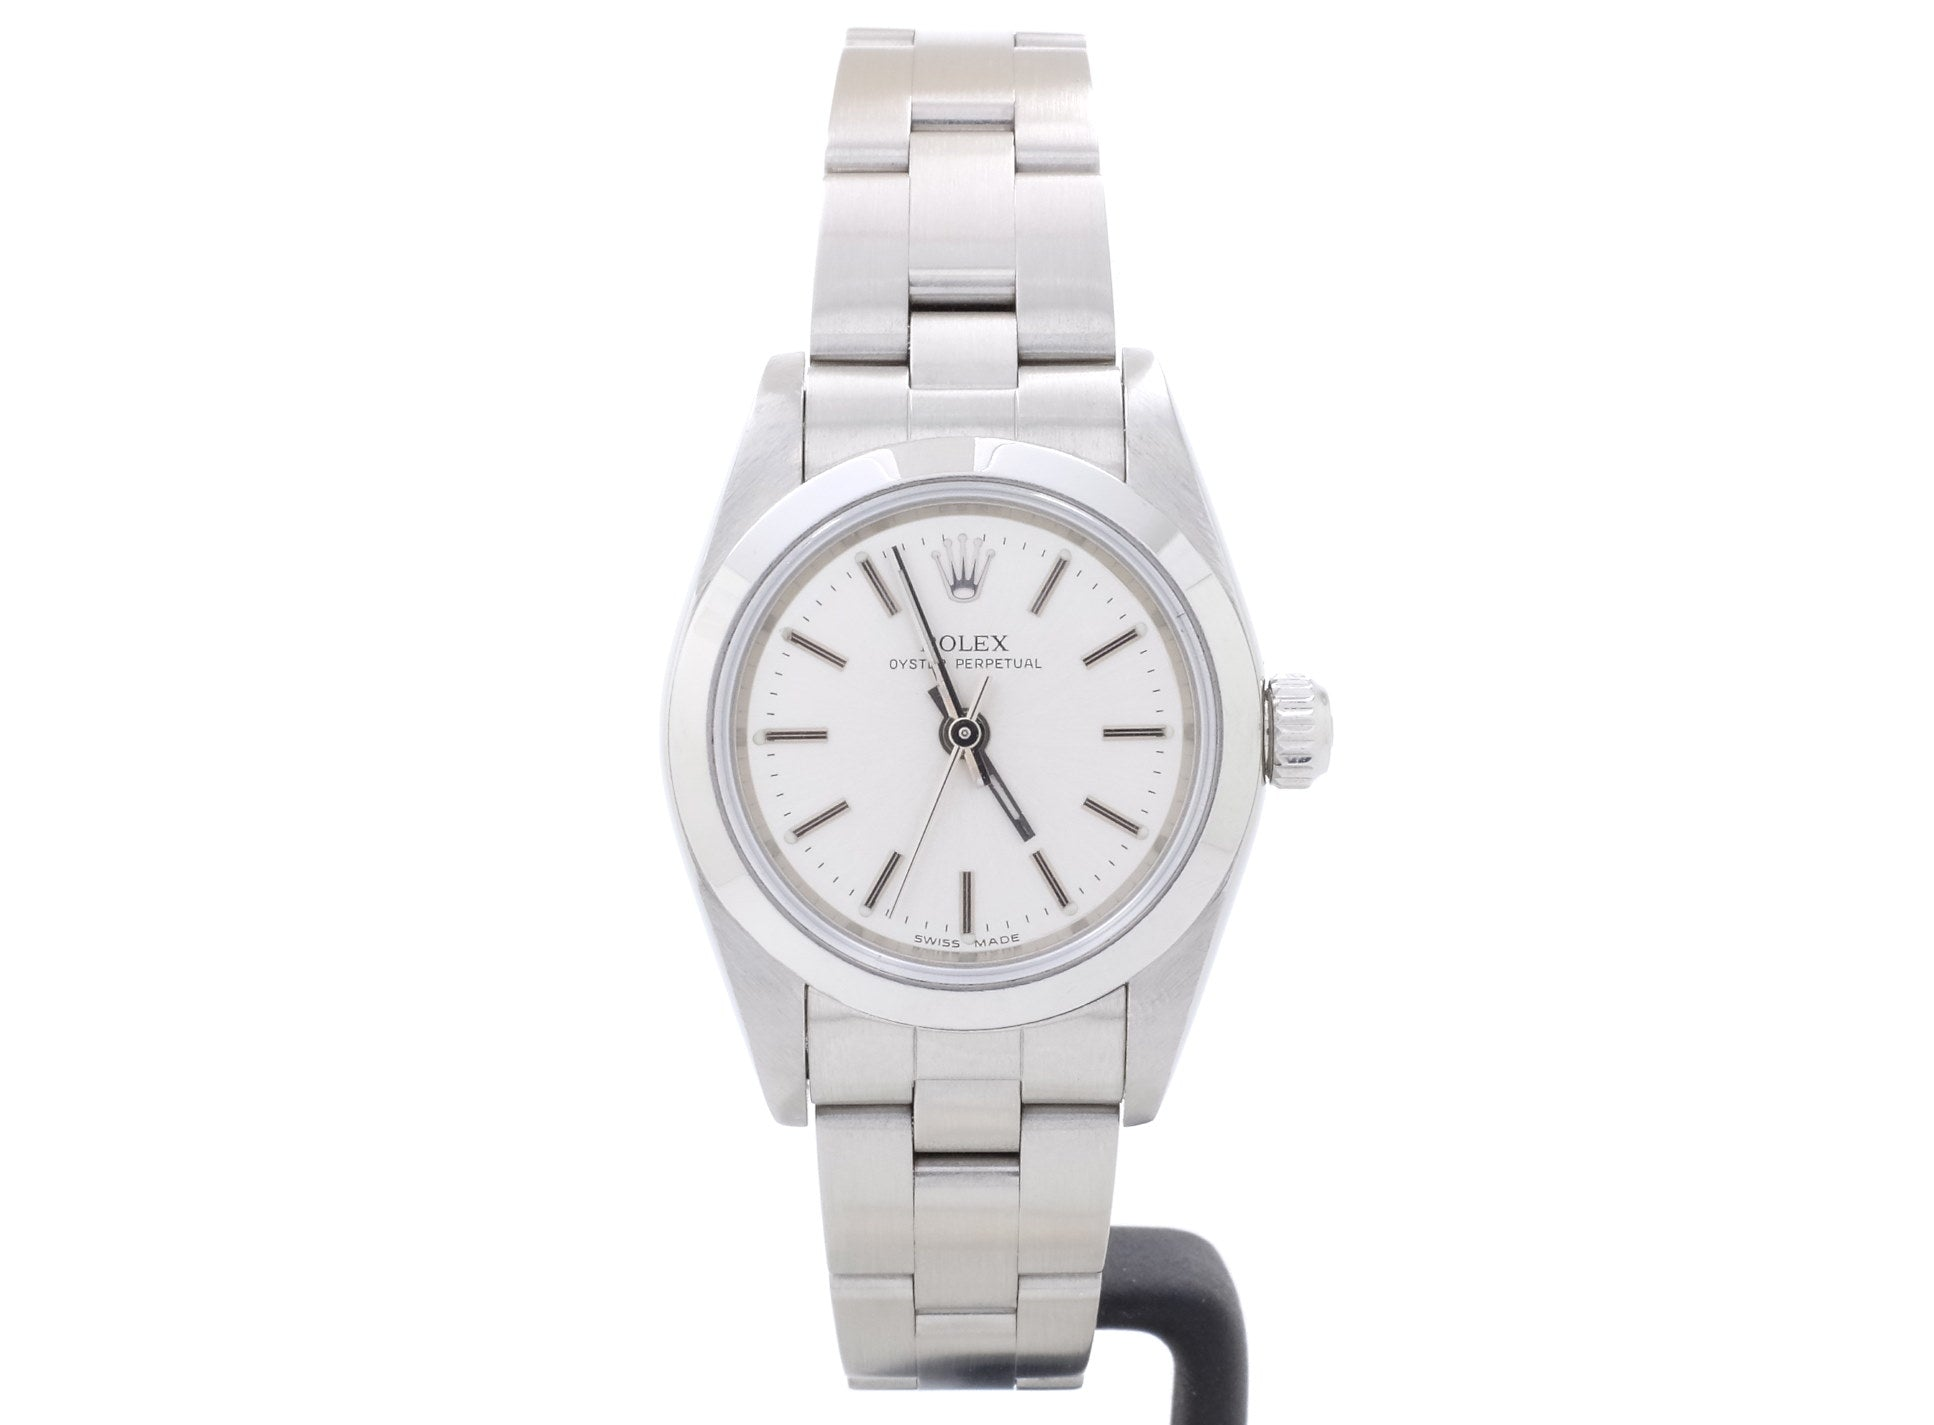 Ladies' 24mm Rolex OYSTER 76080—Would Make a Nice Gift!